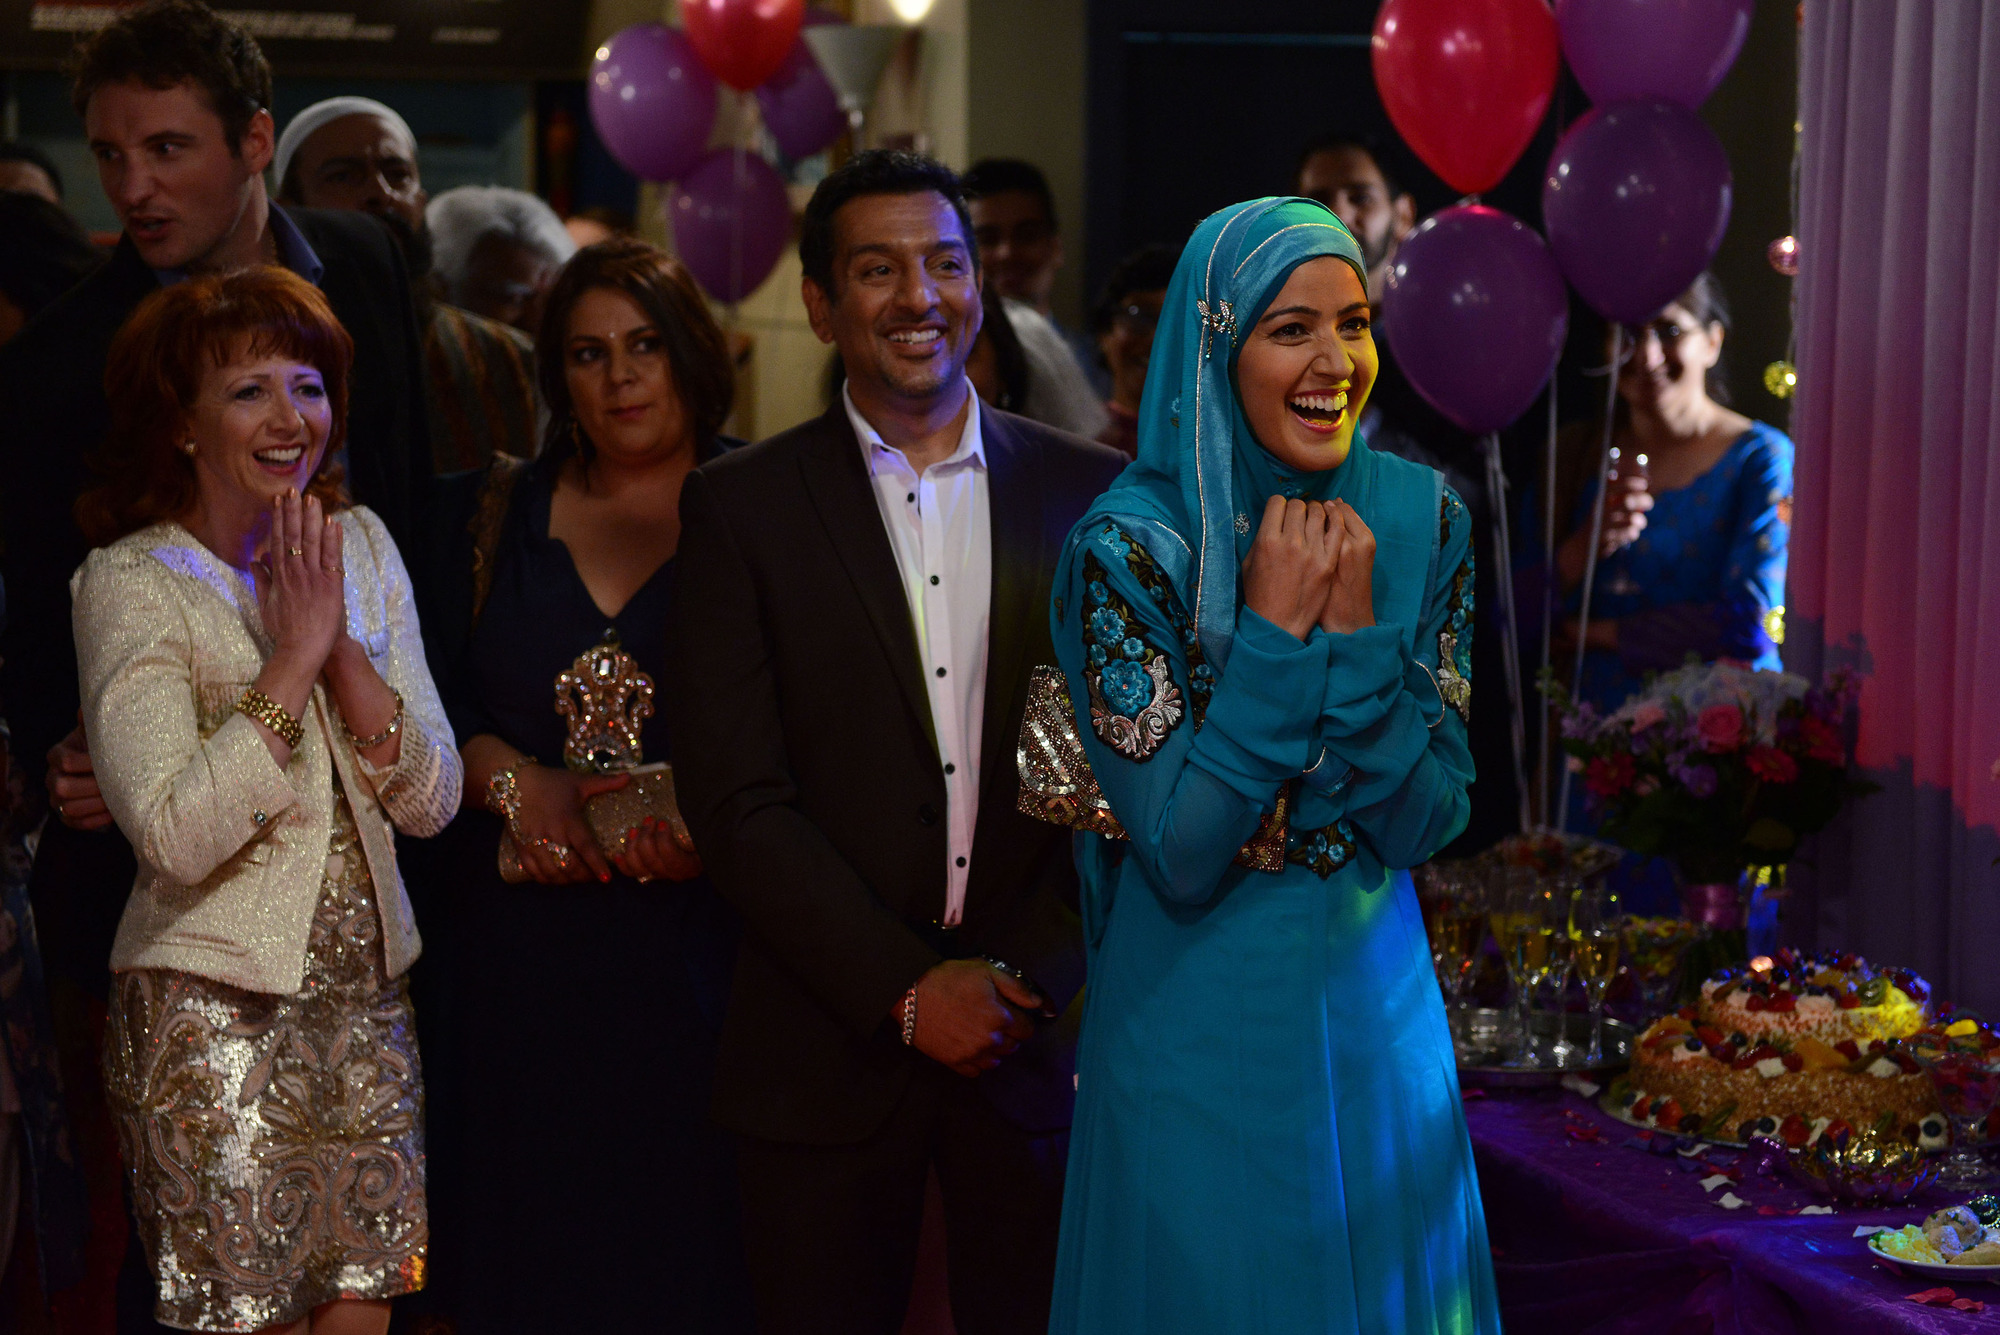 WARNING: Embargoed for publication until 09/06/2015 - Programme Name: EastEnders - TX: 15/06/2015 - Episode: 5085 (No. n/a) - Picture Shows: ***FORTNIGHTLIES PLEASE DO NOT USE (SOAP LIFE and ALL ABOUT SOAP) Shabnam is delighted when the boys perform their dance routine! Martin Fowler (JAMES BYE), Carmel (BONNIE LANGFORD), Masood Ahmed (NITIN GANATRA), Shabnam Masood (RAKHEE THAKRAR) - (C) BBC - Photographer: Steve Peskett